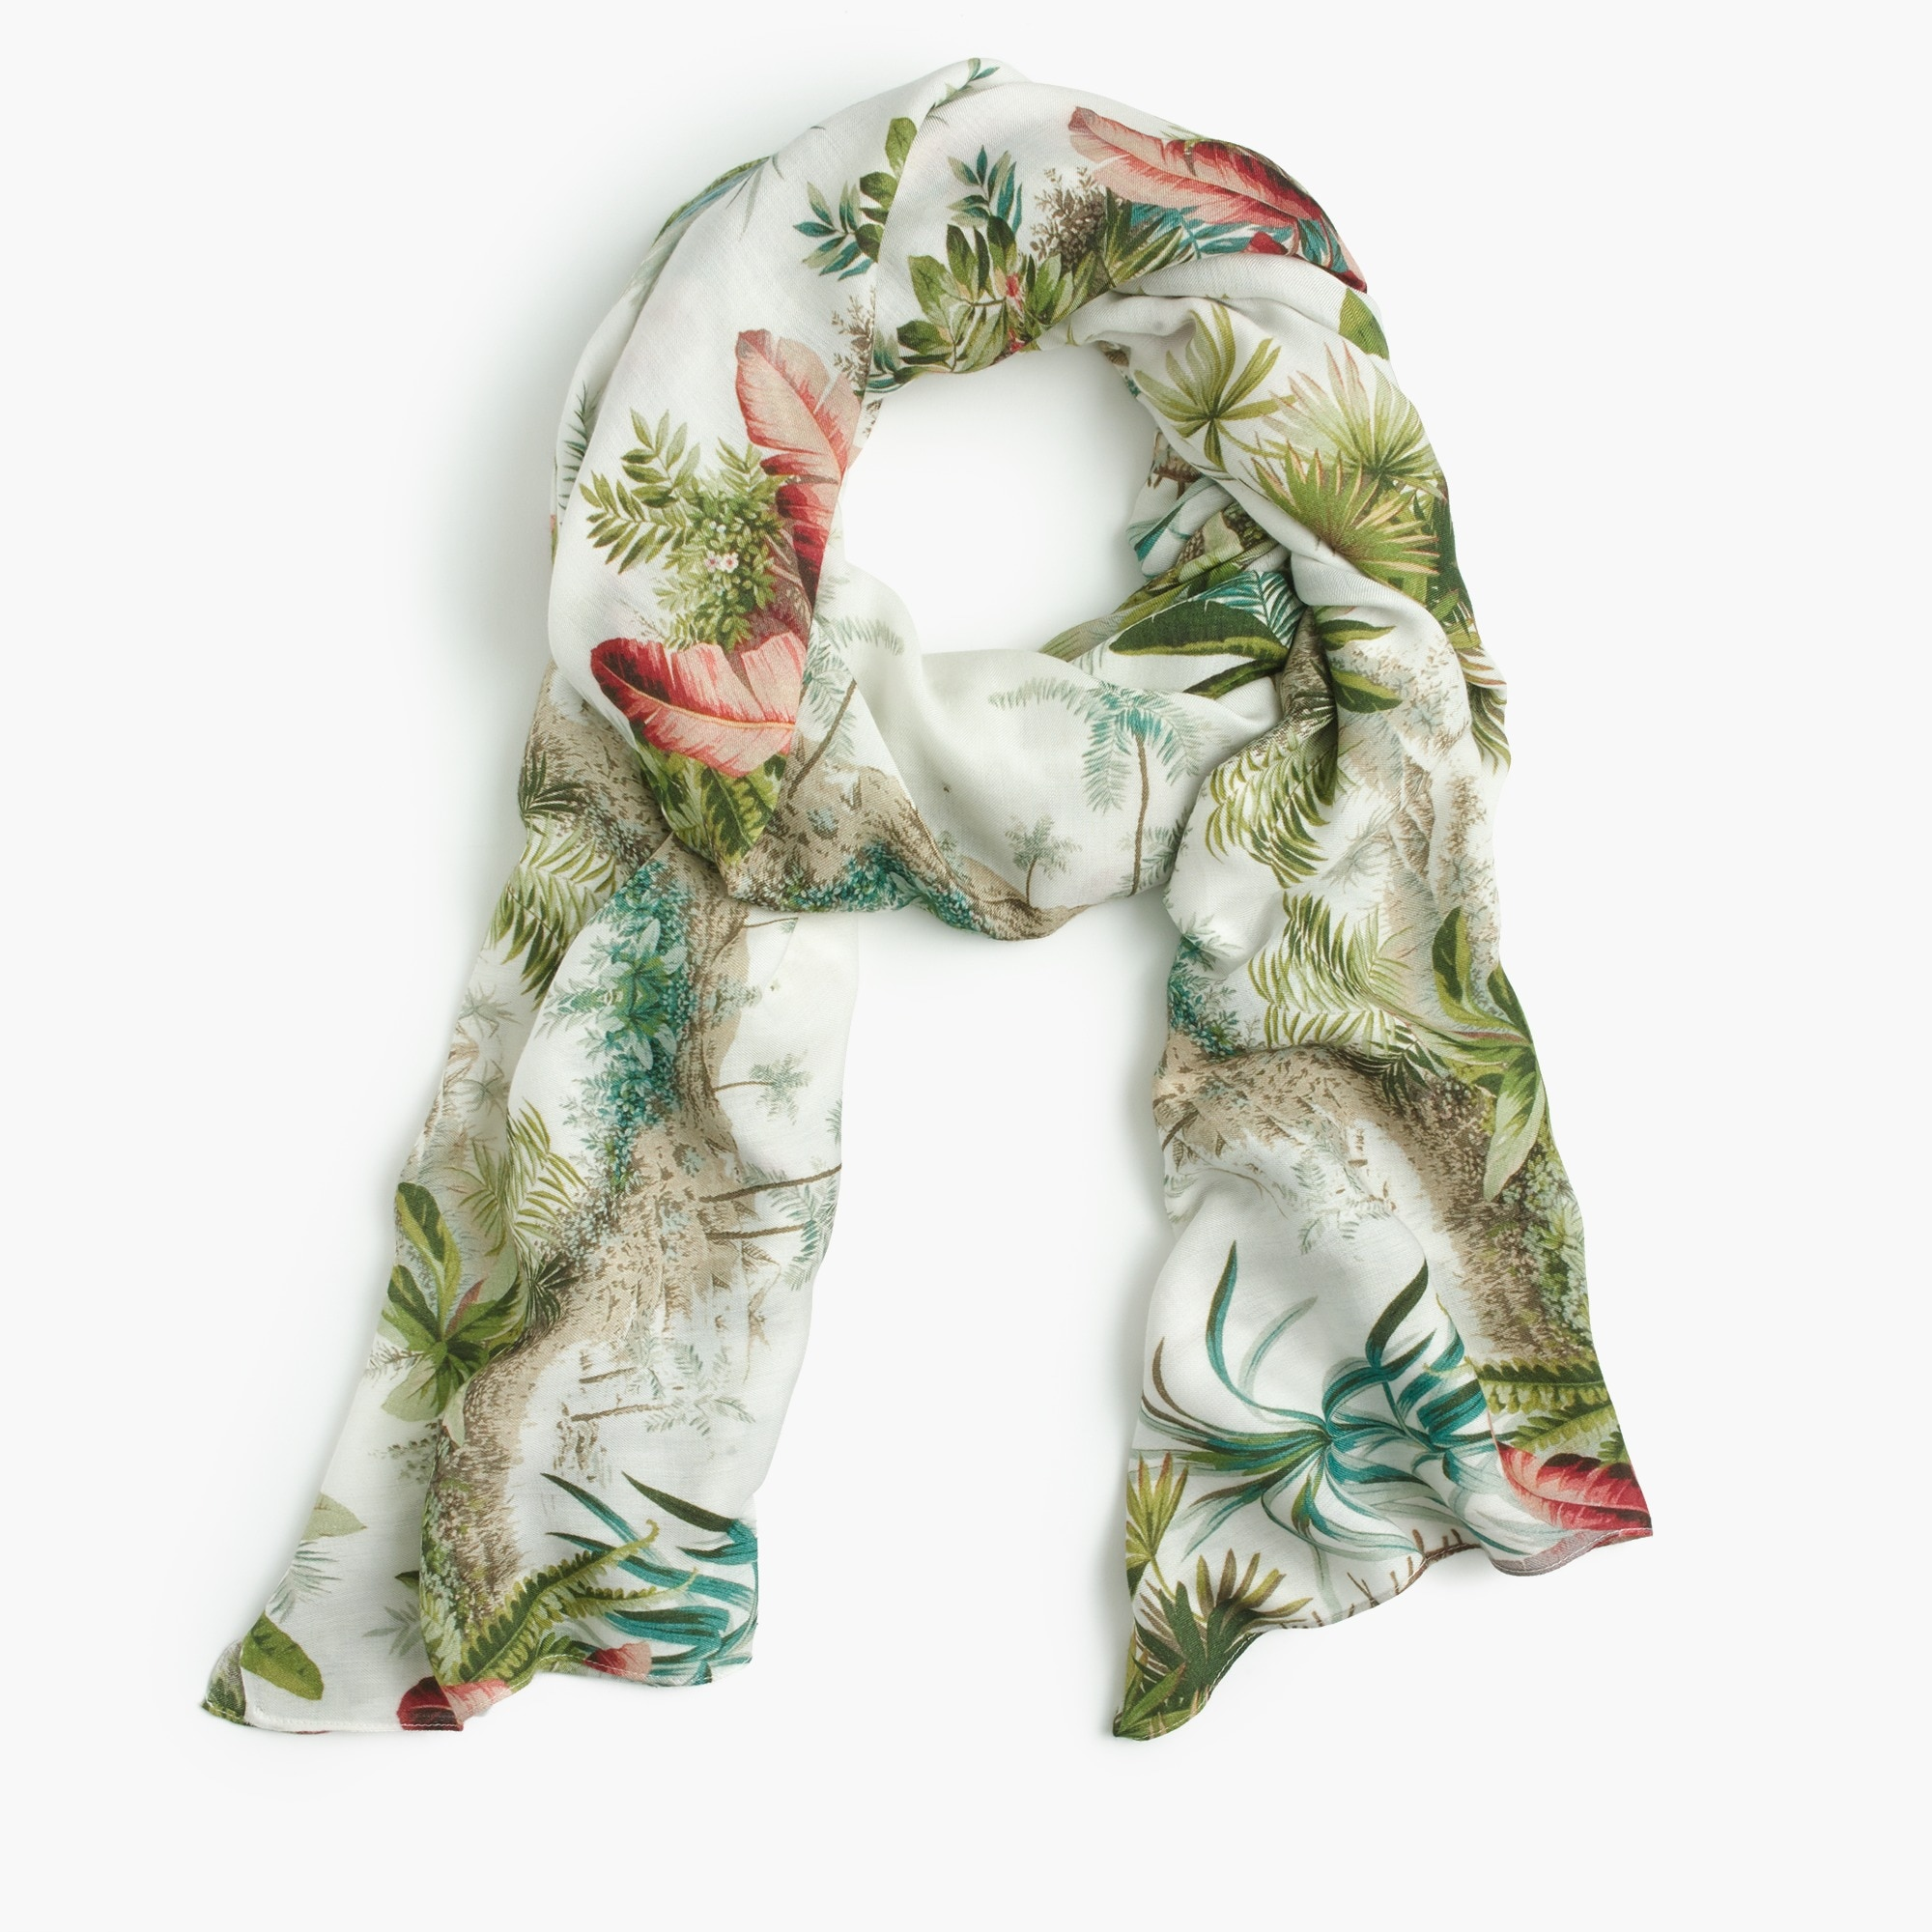 Image 1 for Pierre Frey™ for J.Crew scarf in in Alexandrie print